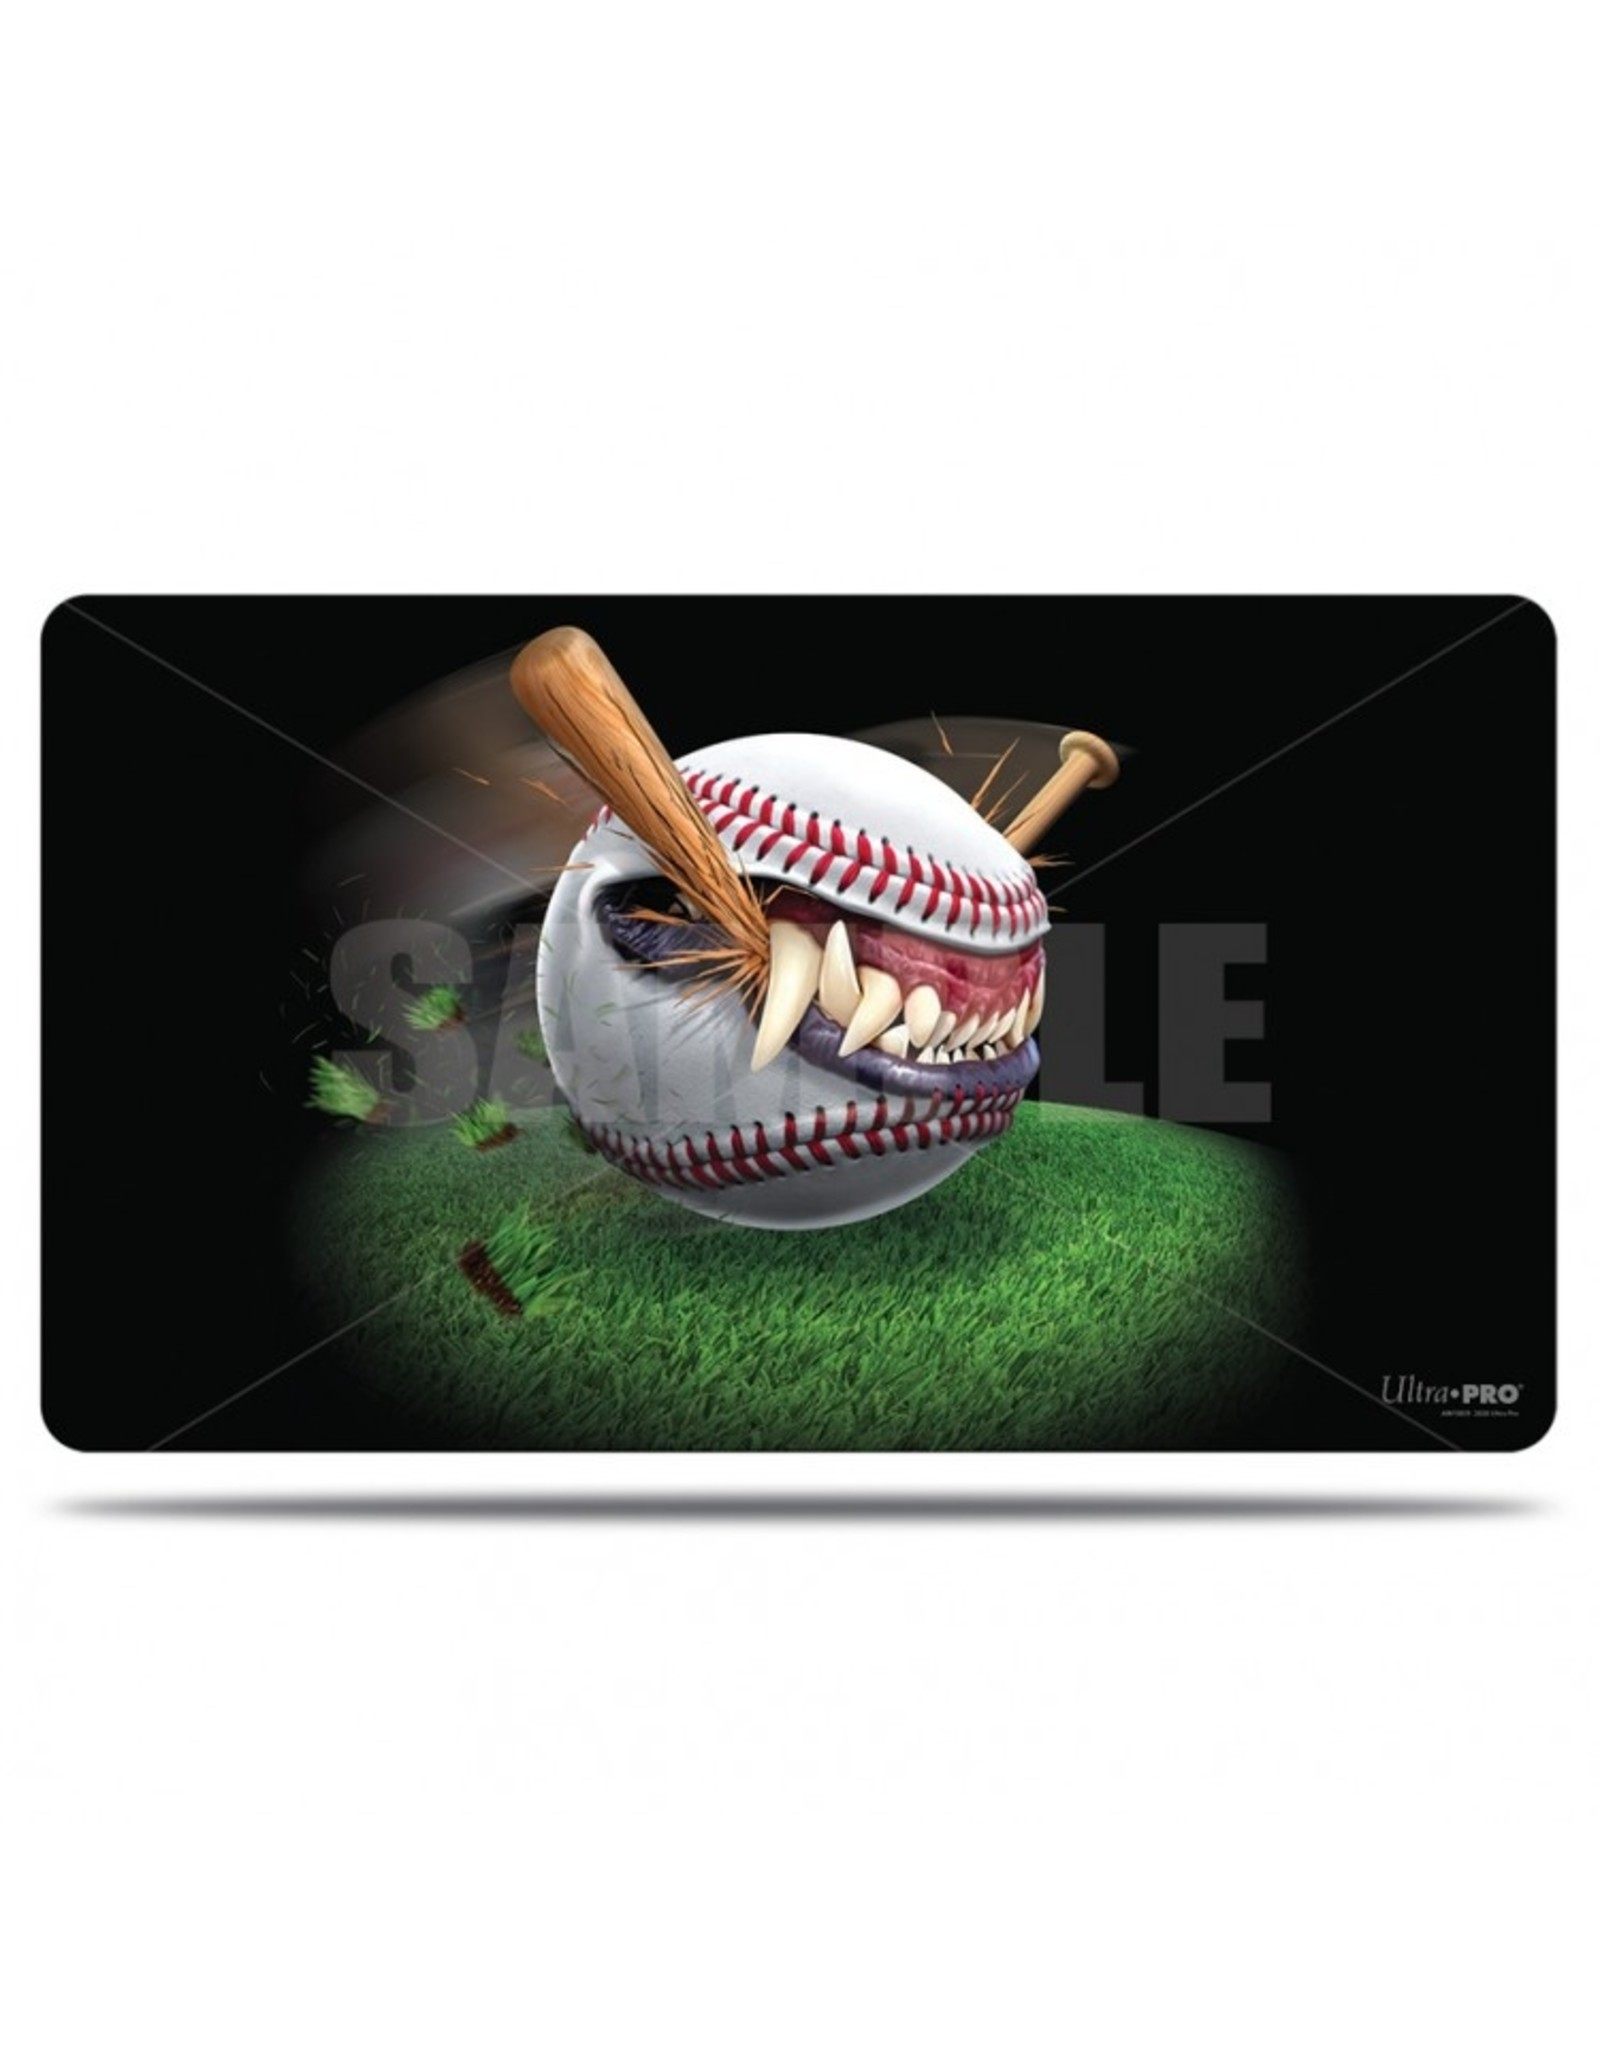 Ultra Pro Play Mat: Tom Wood Monster Baseball